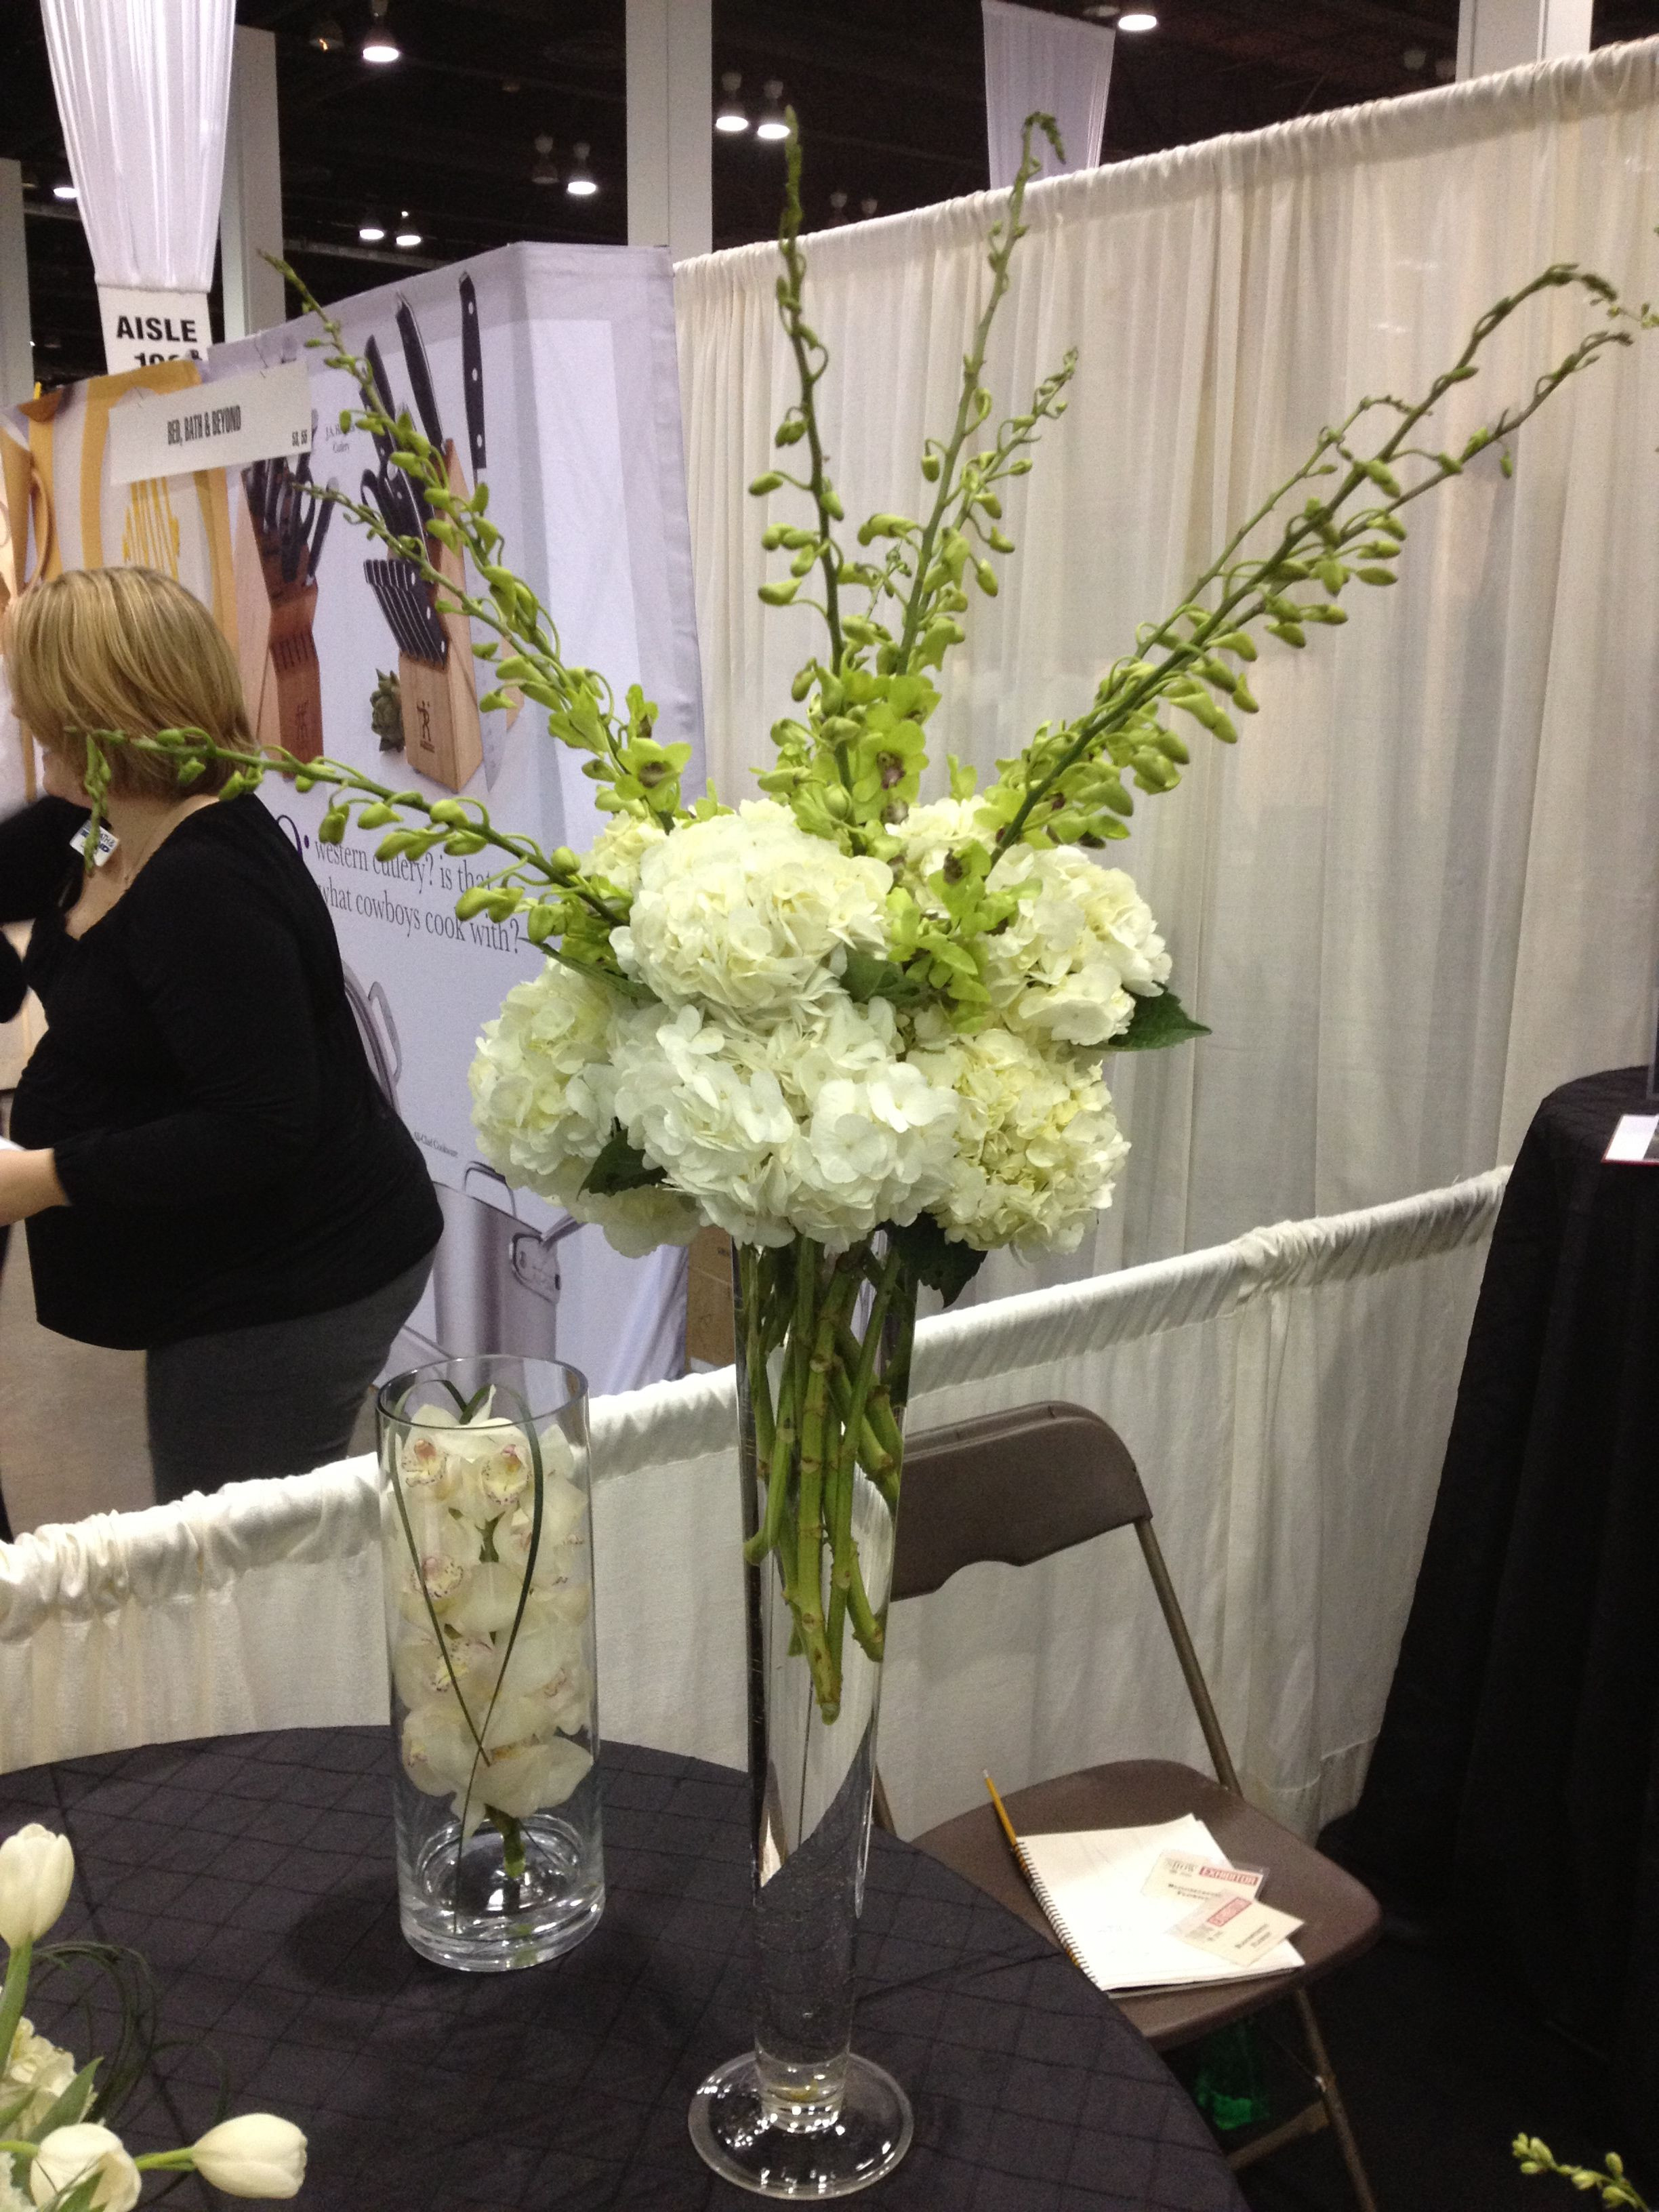 tall pewter vase of white hydrangea and green dendrobium orchids mounded on top of a within white hydrangea and green dendrobium orchids mounded on top of a tall pilsner vase